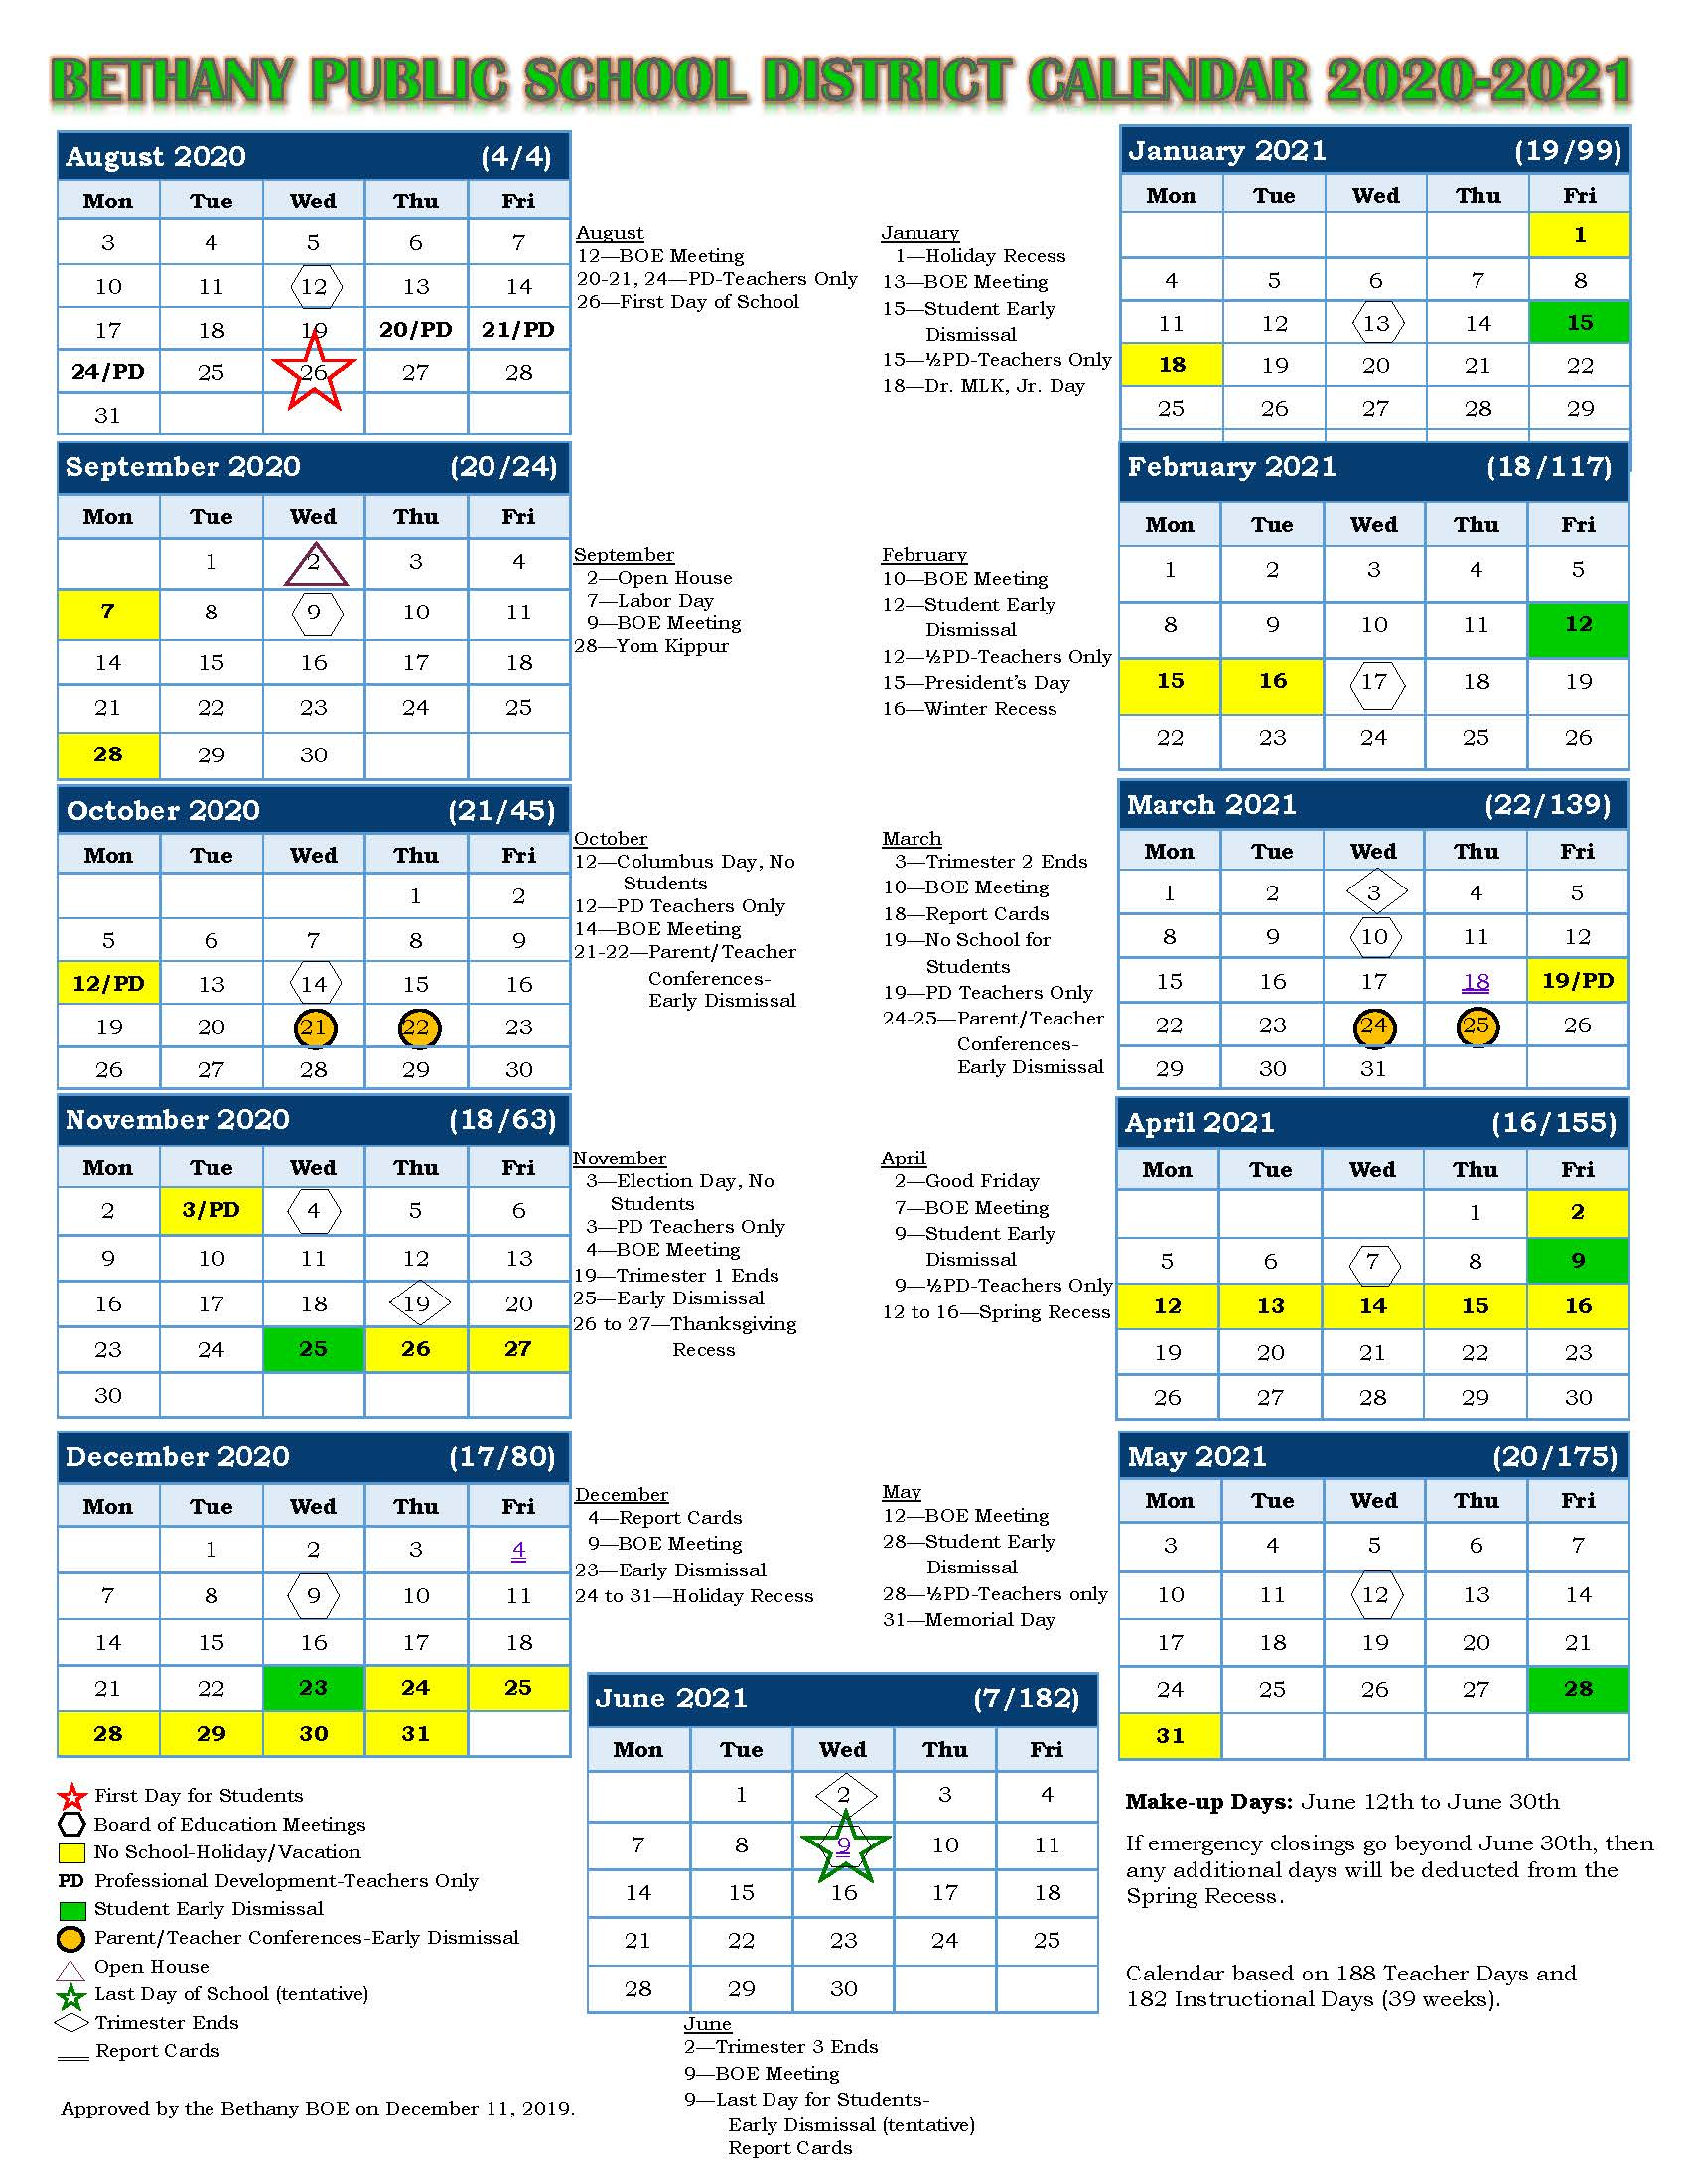 Bethany Public School District Calendar 2020-2021